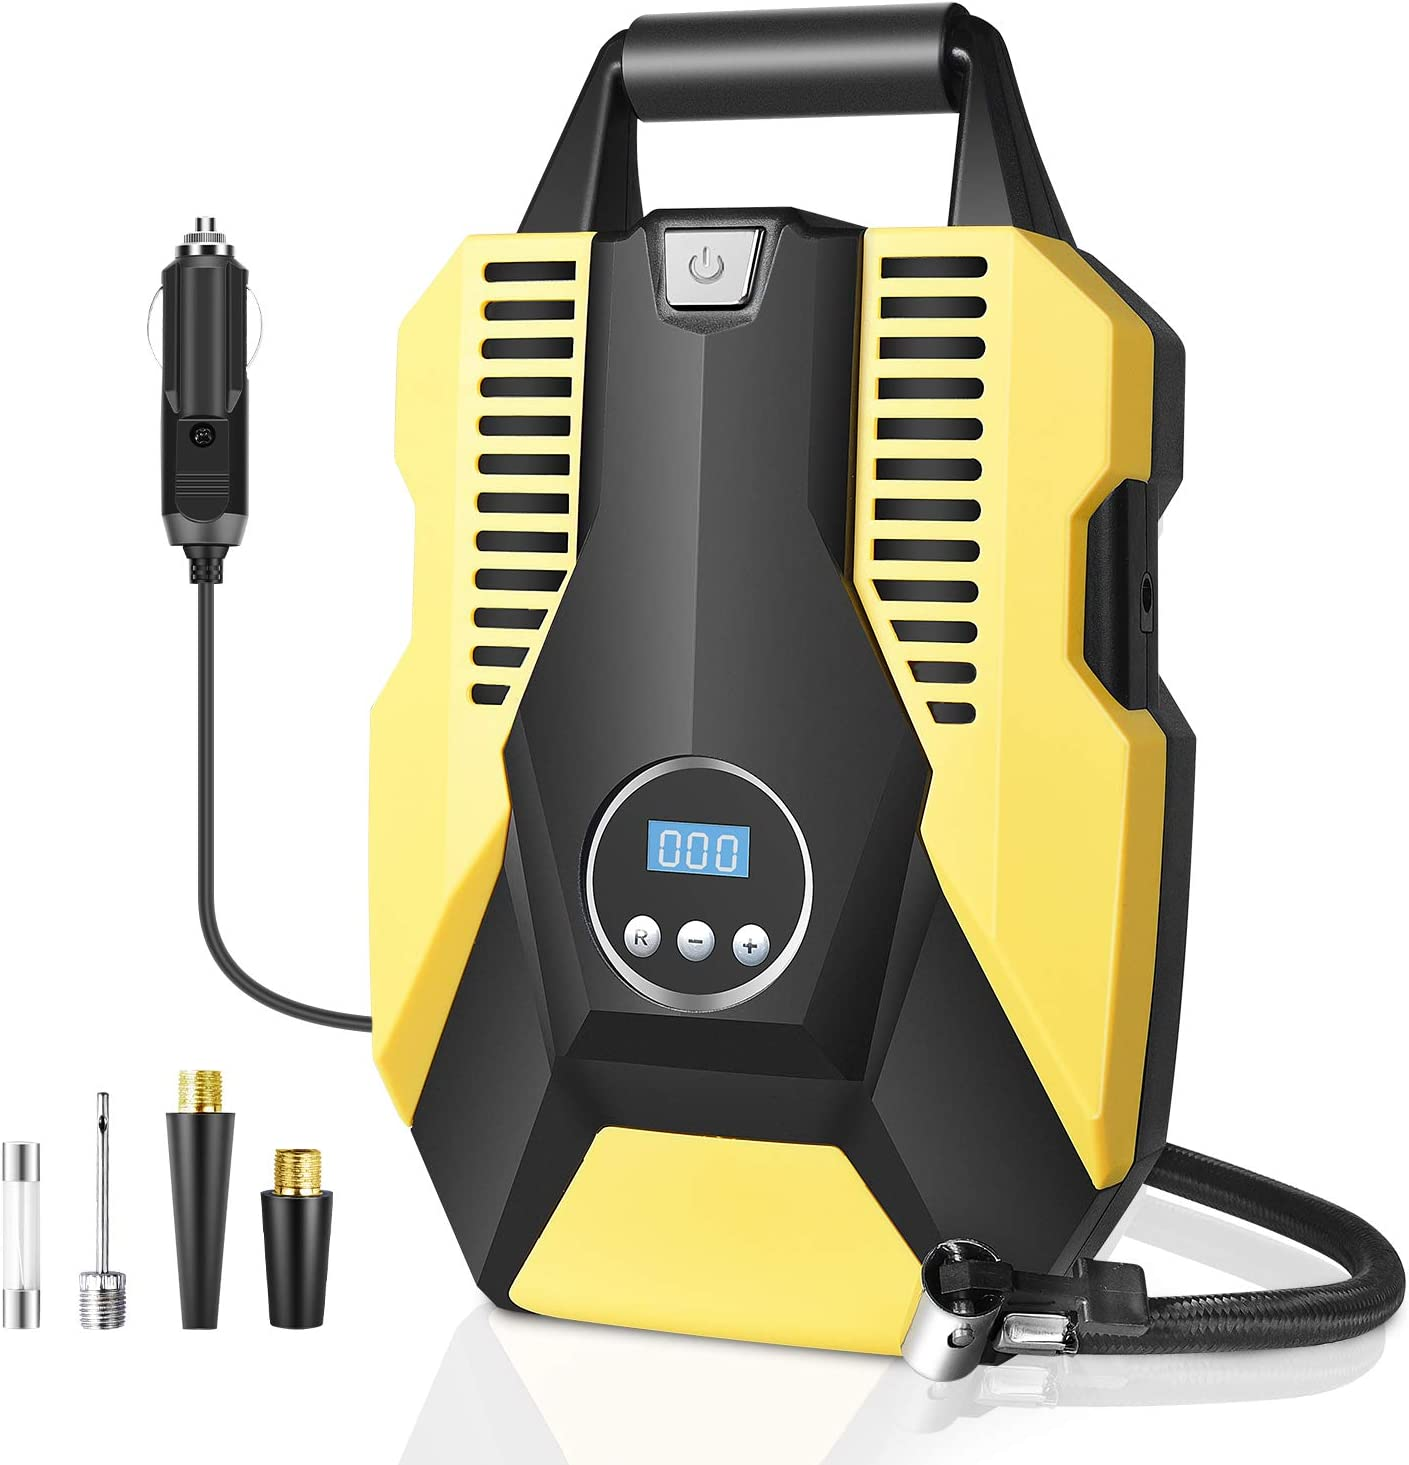 Details about  /12V Tire Inflator Car Air Pump Compressor 150 PSI Electric Cordless Rechargeable